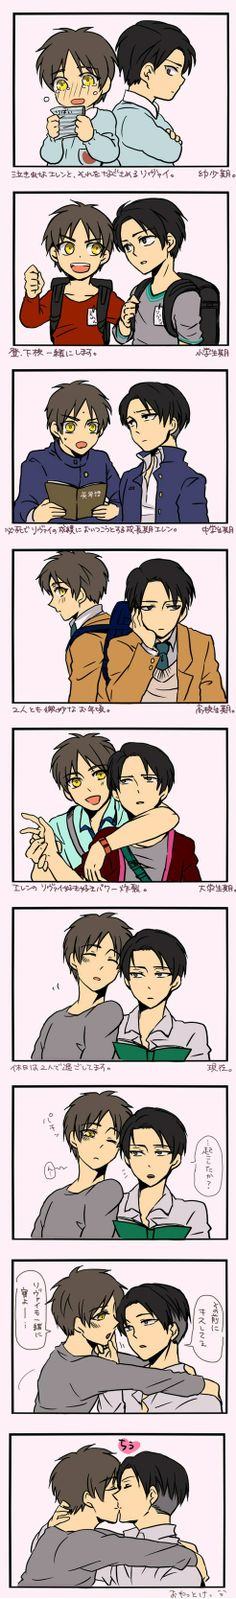 Levi x Eren ~ through the years